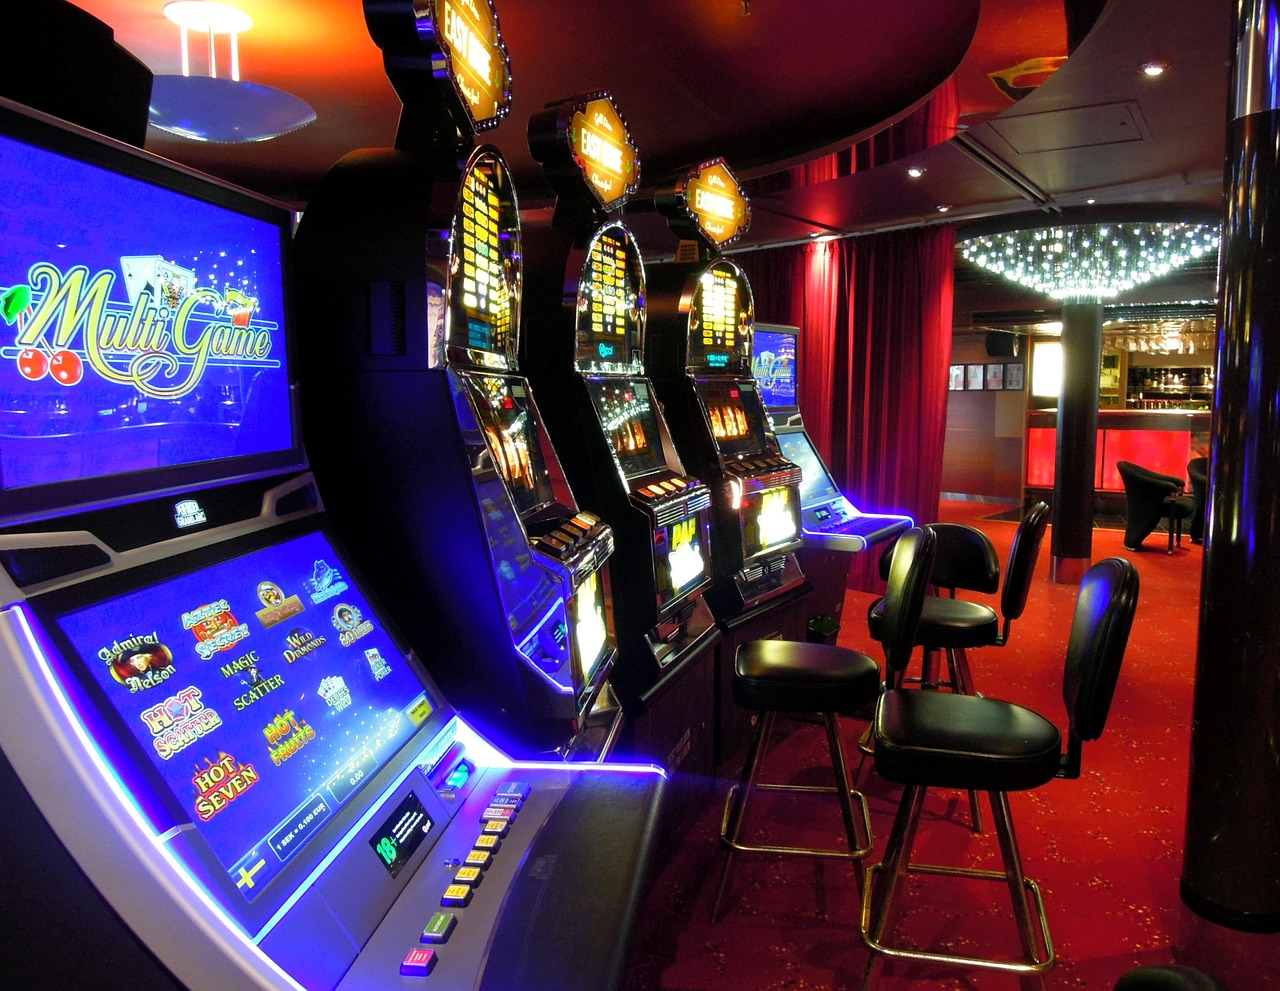 slot machines - gambling